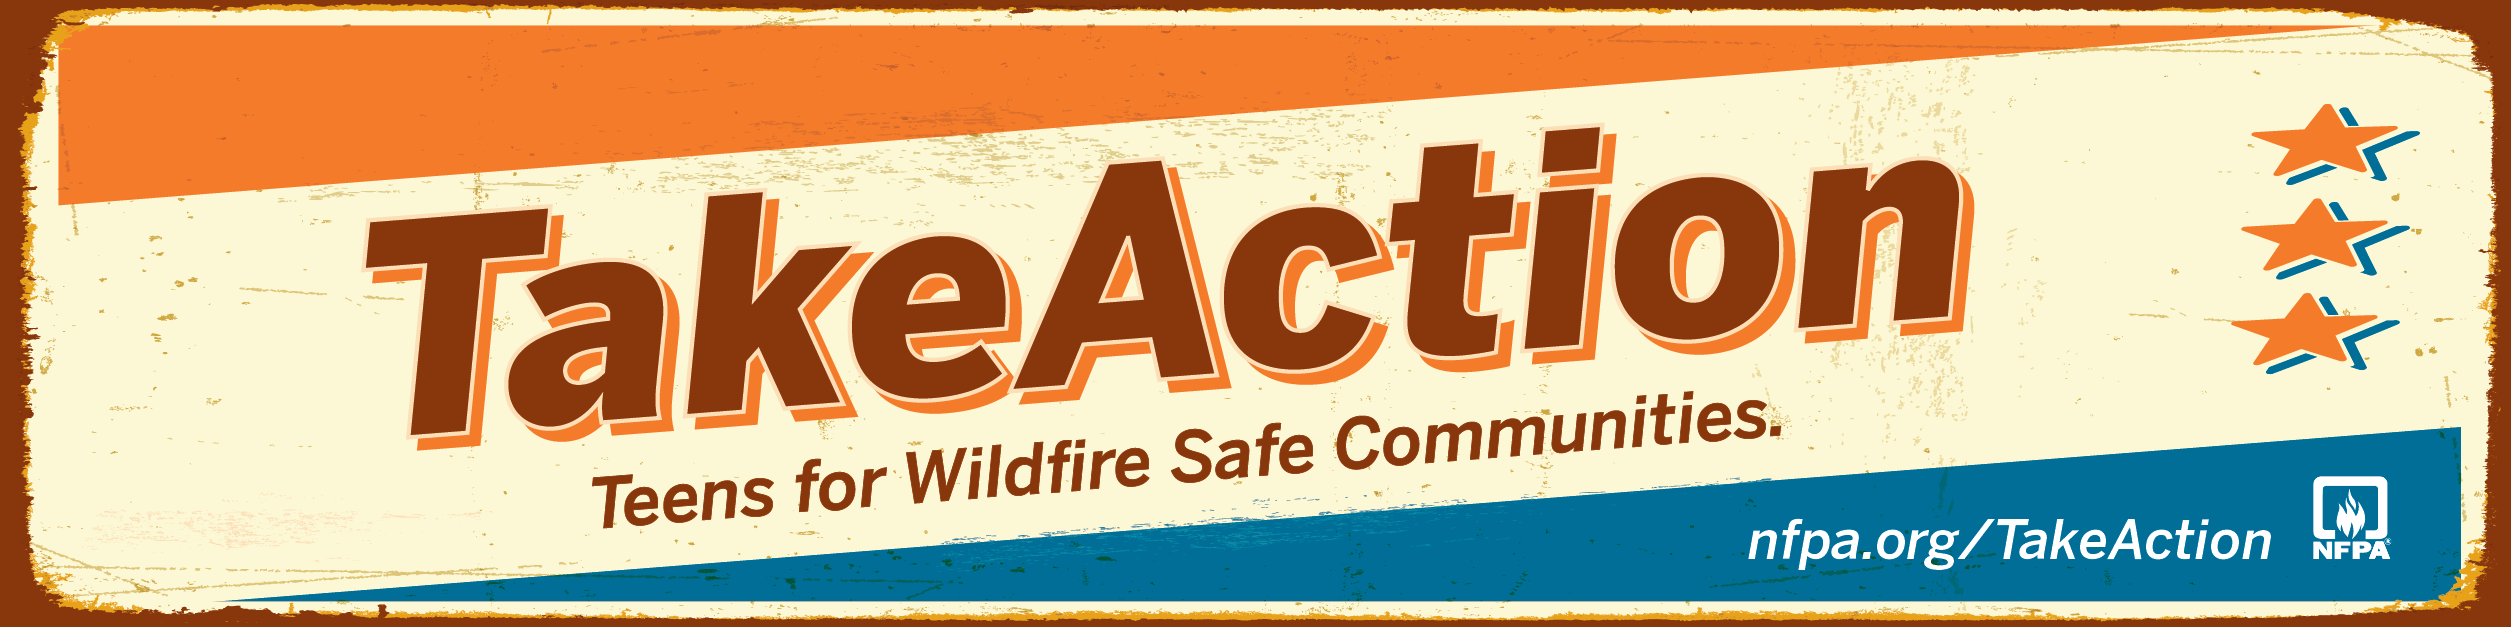 TakeAction banner